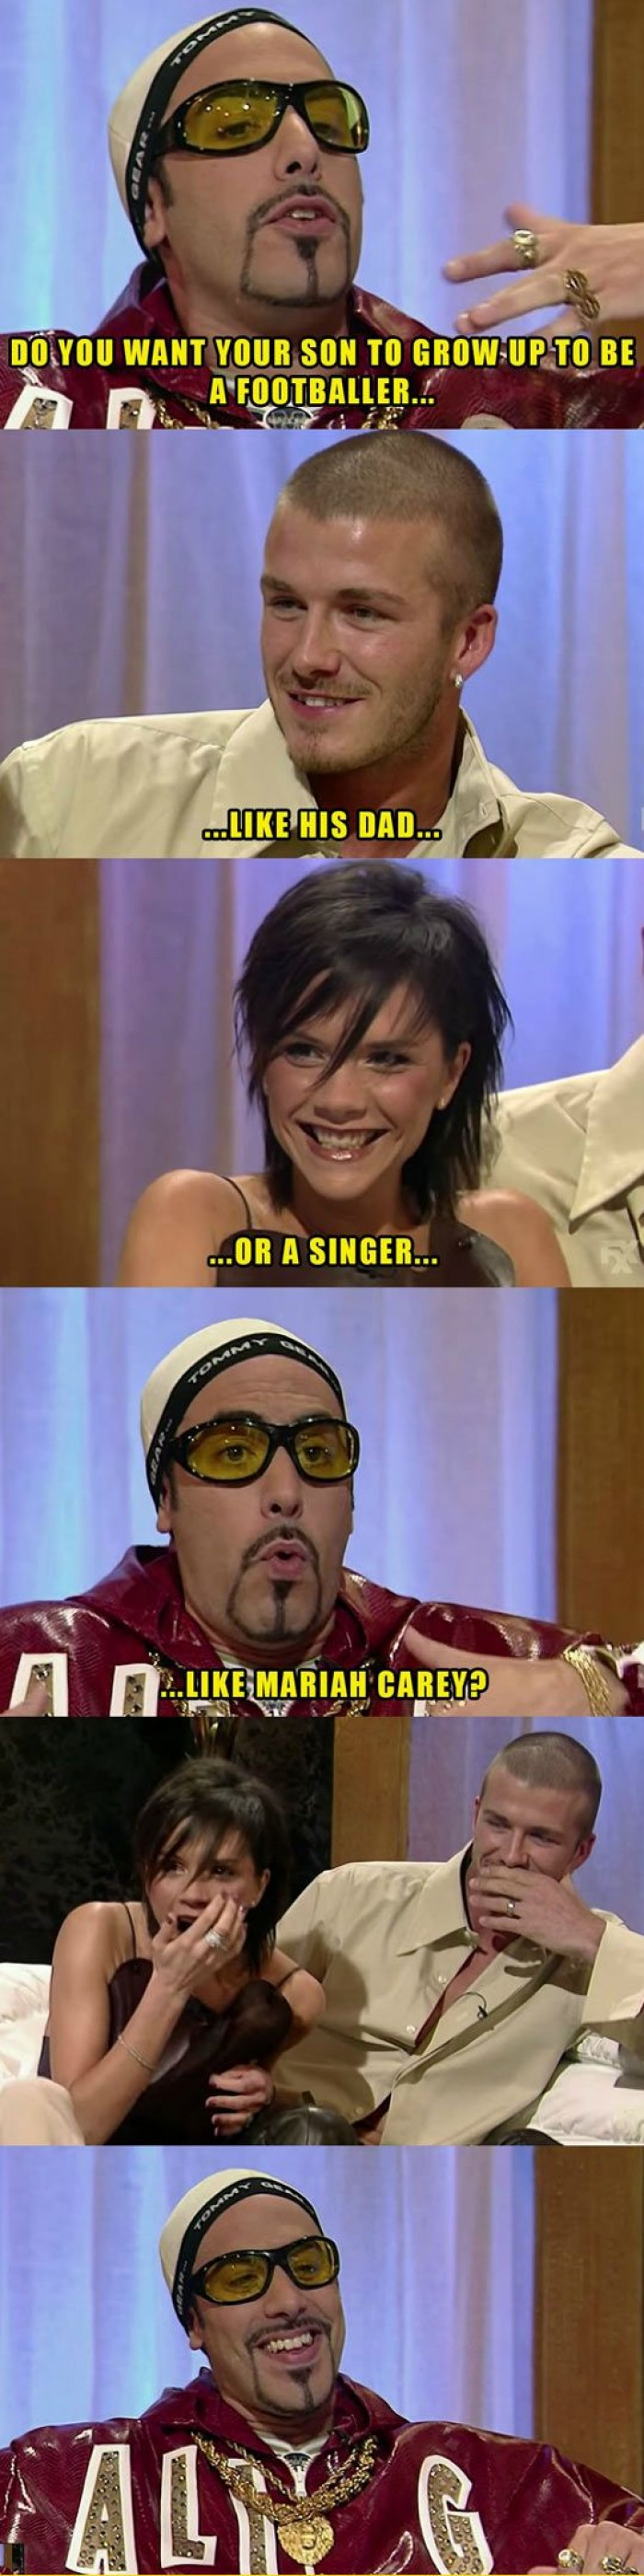 Ali G Interviewing David Beckham And Posh Spice